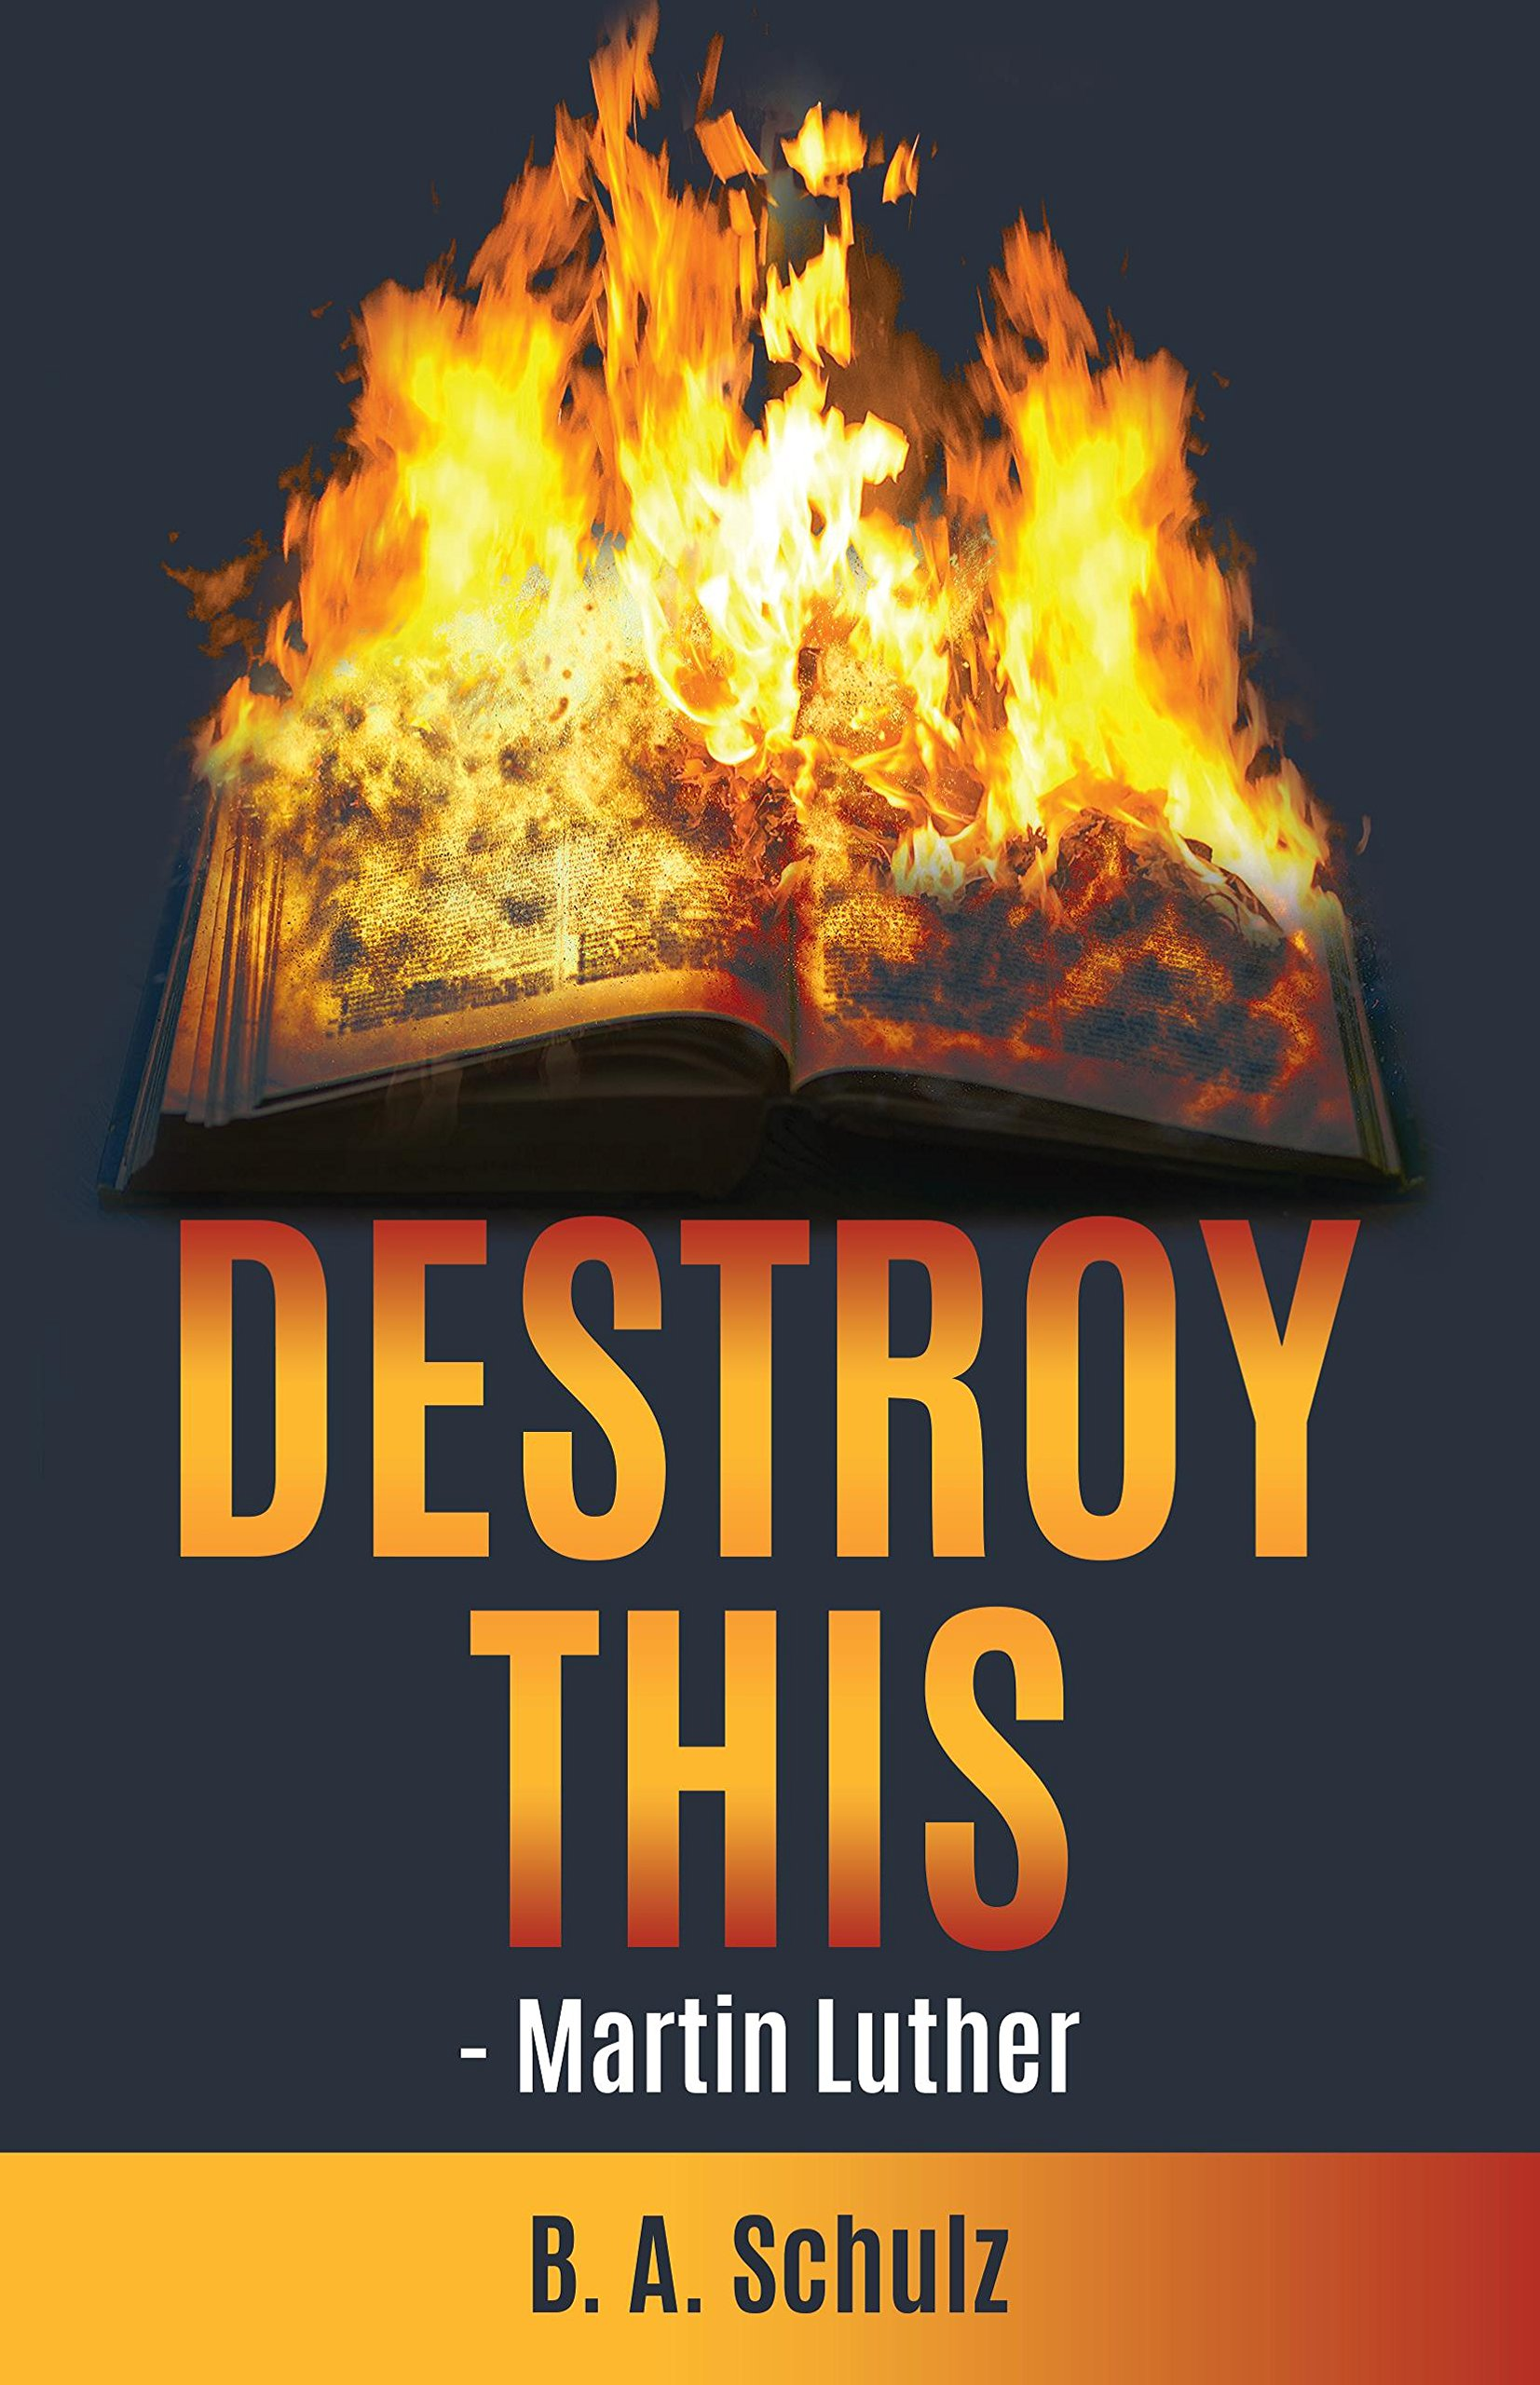 Download DESTROY THIS -Martin Luther pdf epub